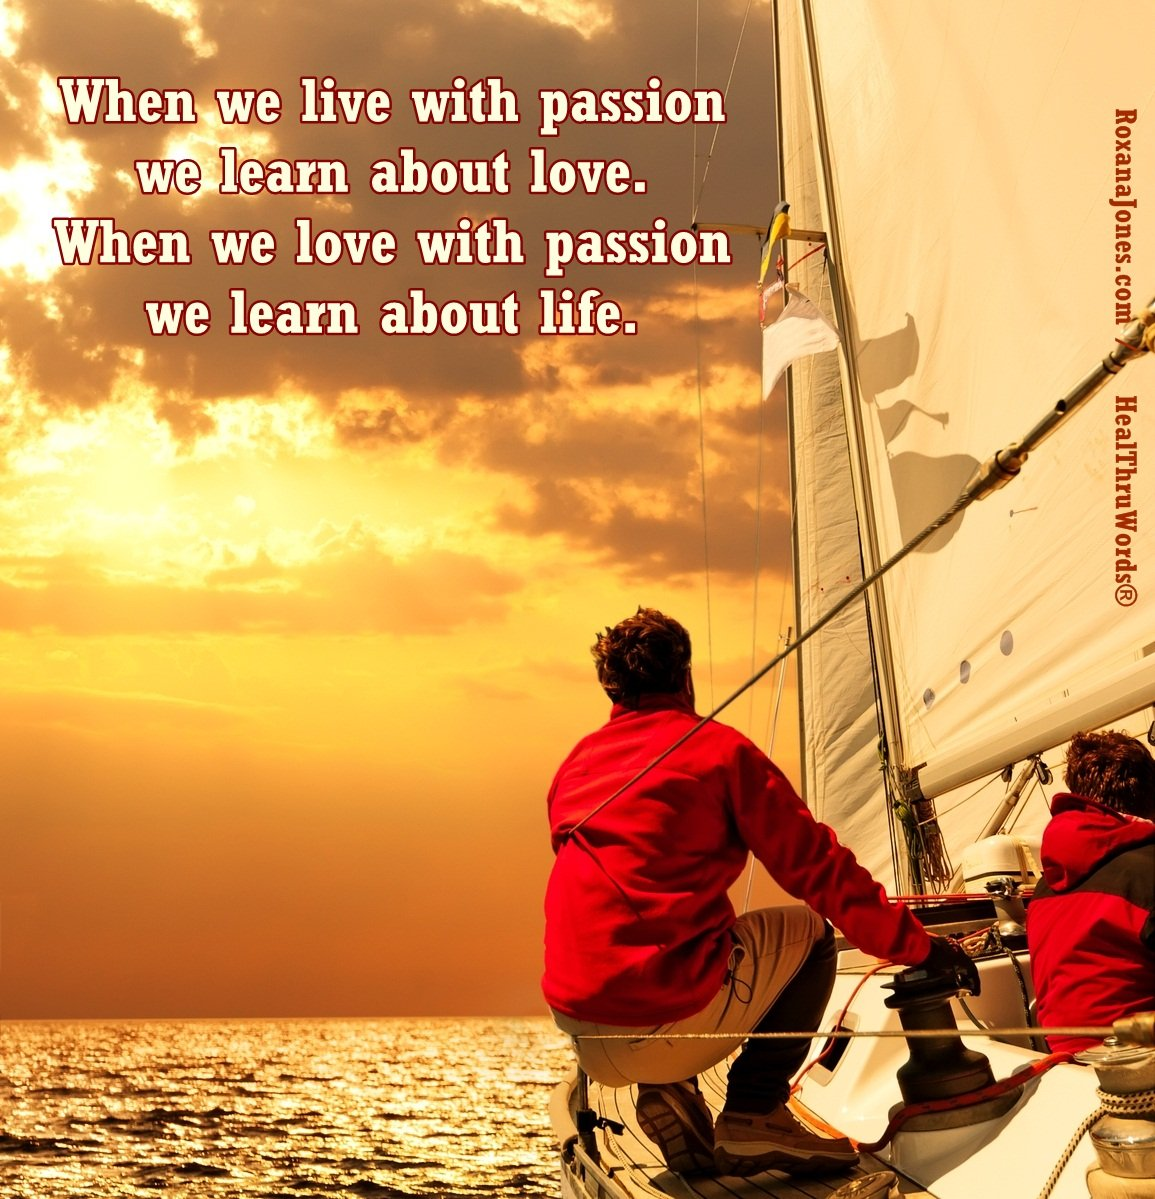 Inspirational Image: Living Passion